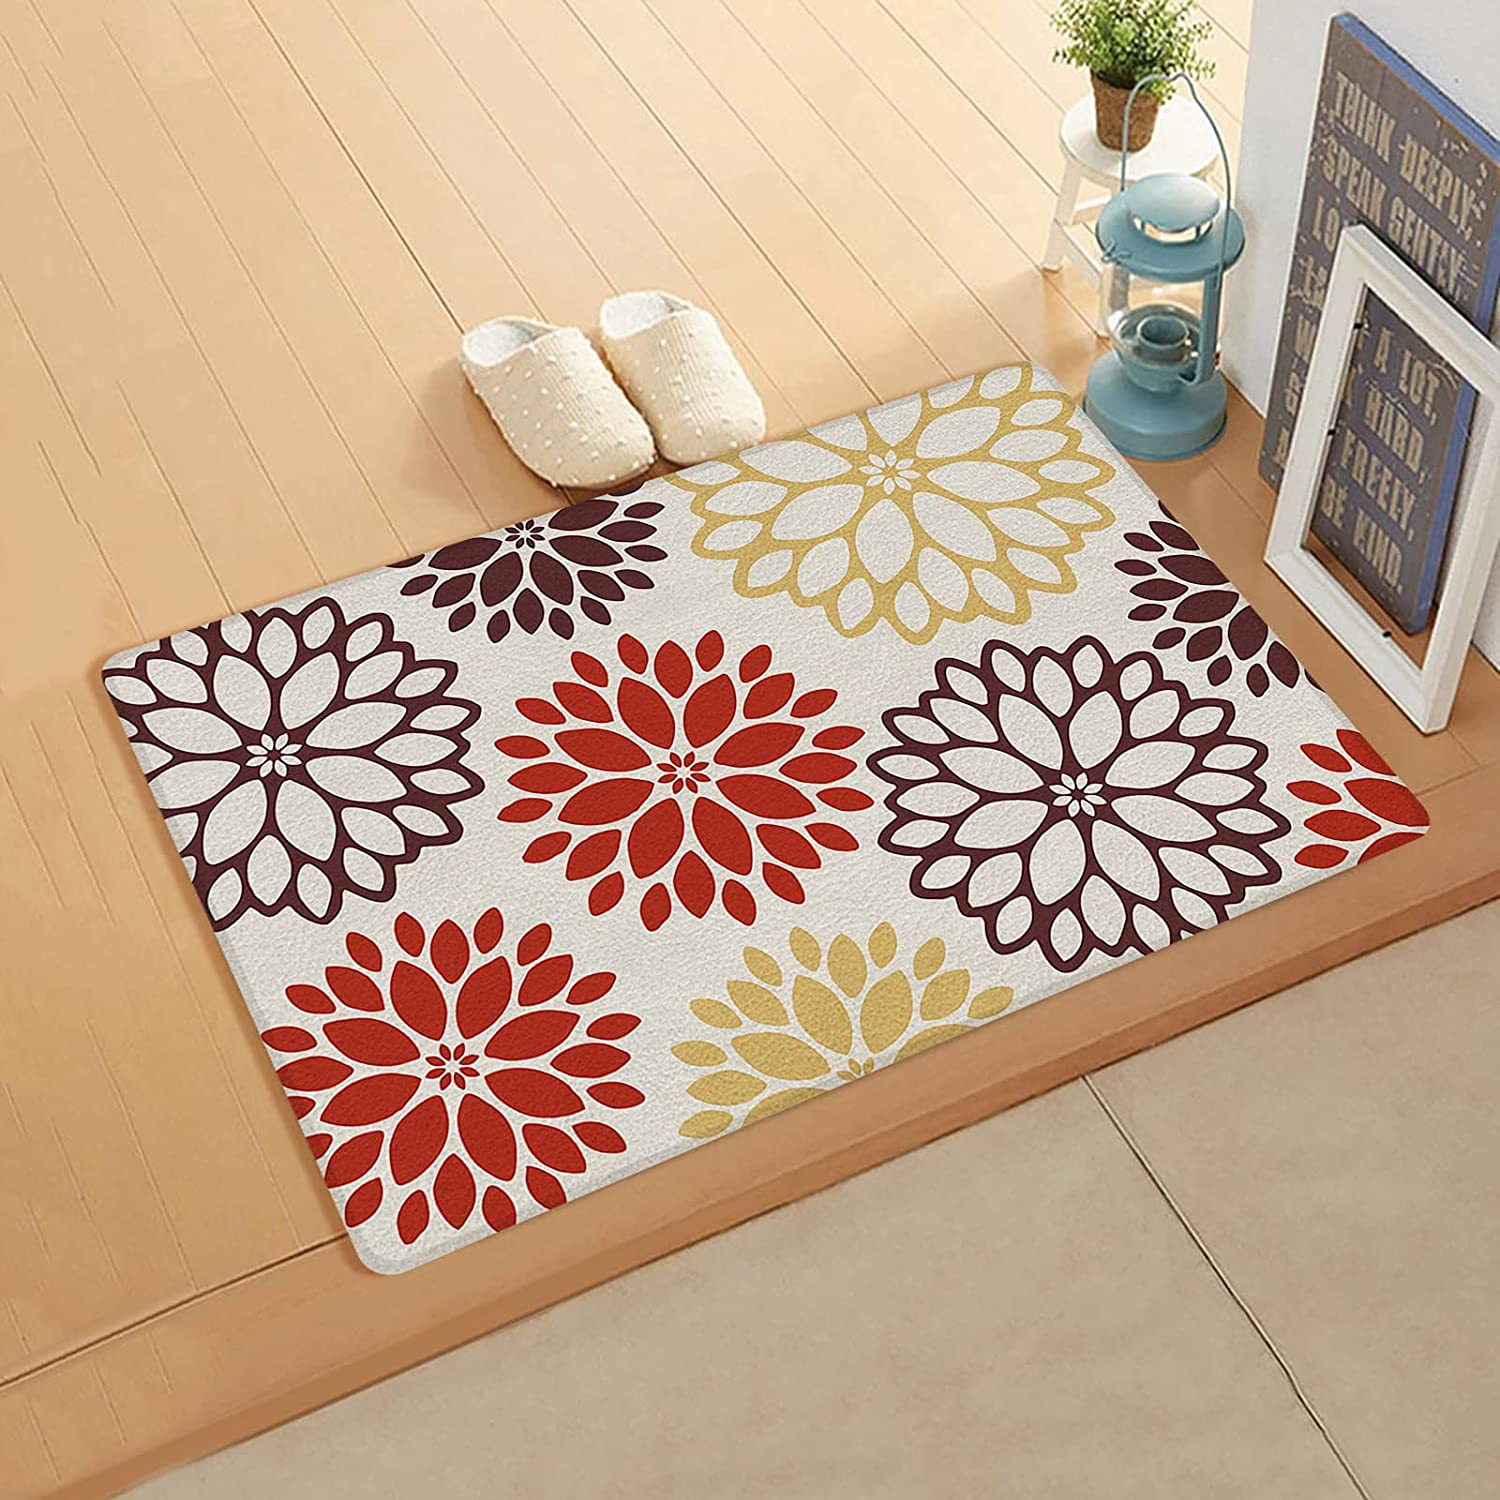 Price reduction Gsypo Cushioned Special Campaign Anti Fatigue Kitchen Country Mat American Style